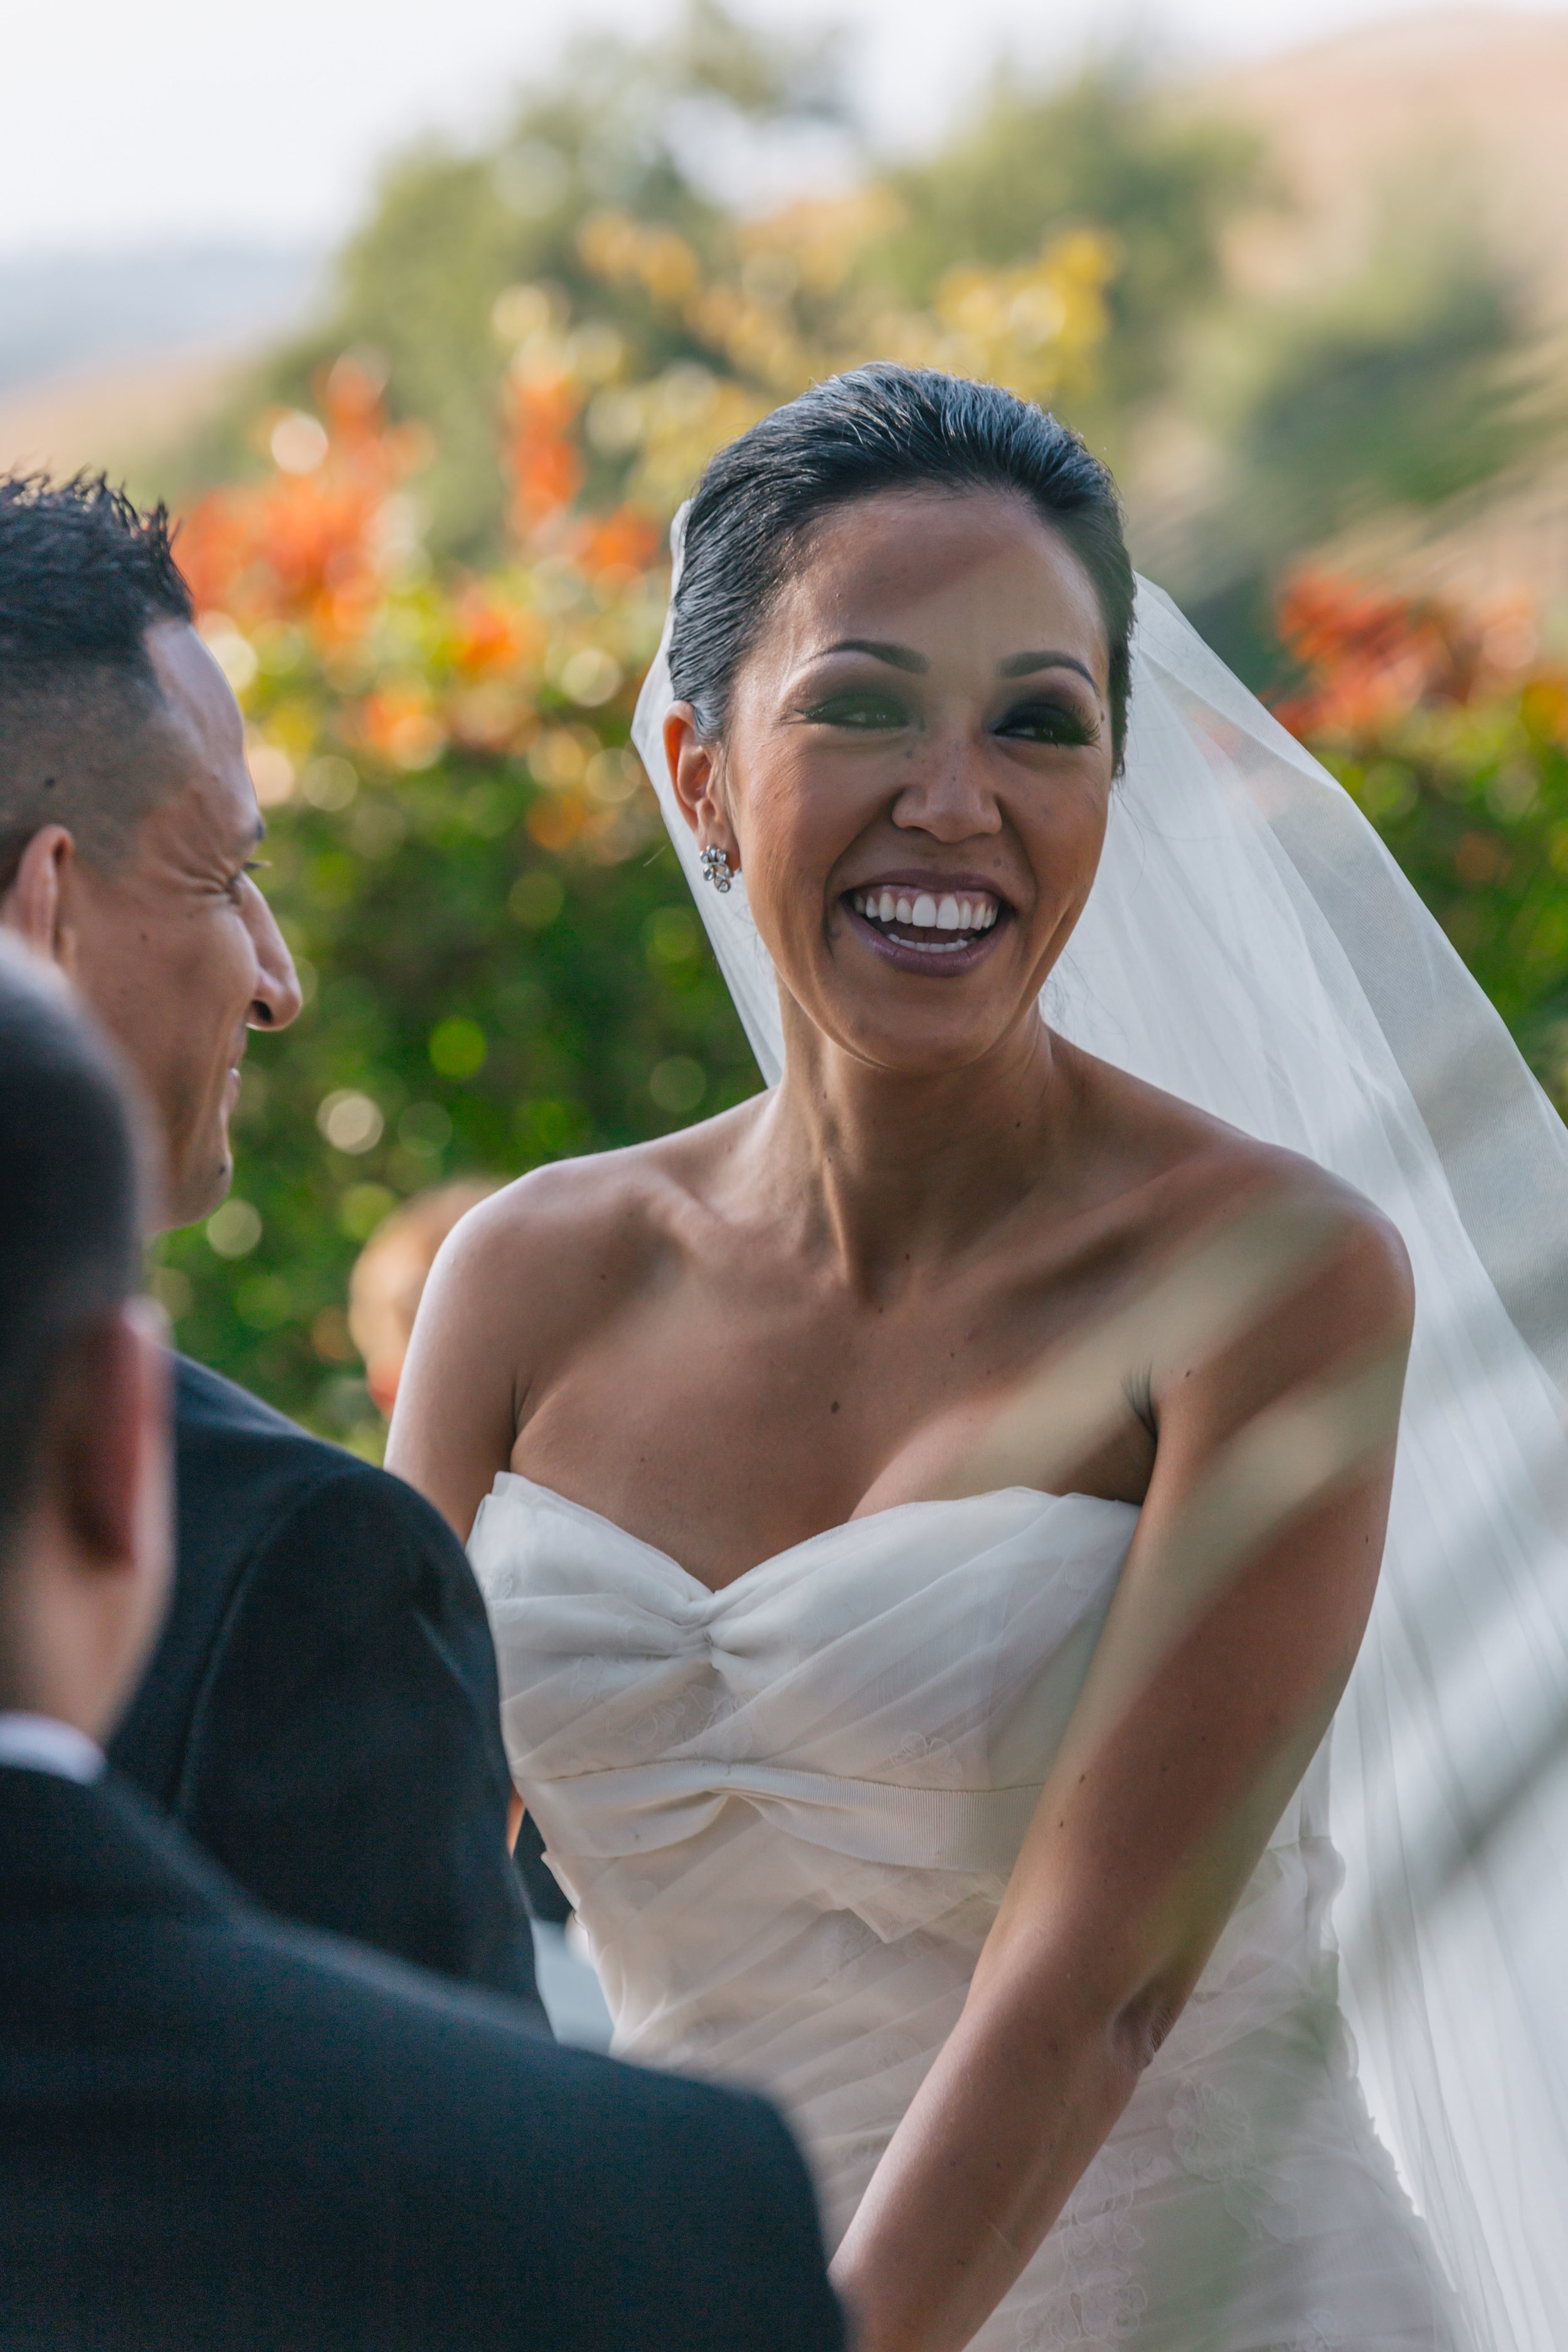 APavone-Photographer-Orange-County-Diamond-Bar-Wedding-058.jpg